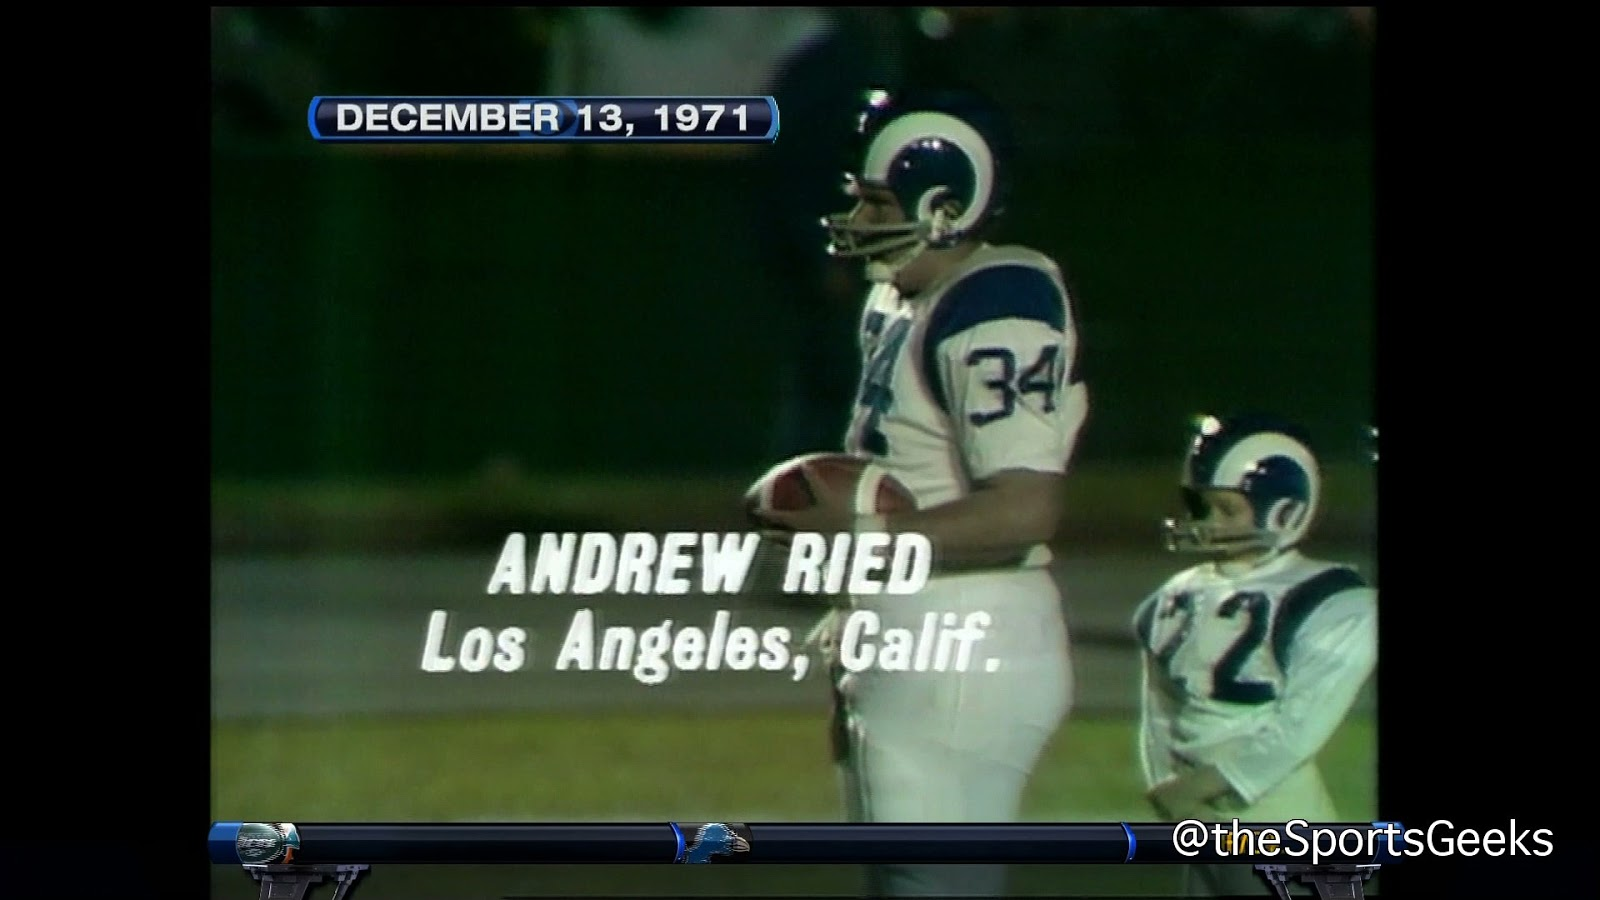 andy reid punt pass kick - Andy Reid at Age 13(looks like 26) punt pass kick YouTube